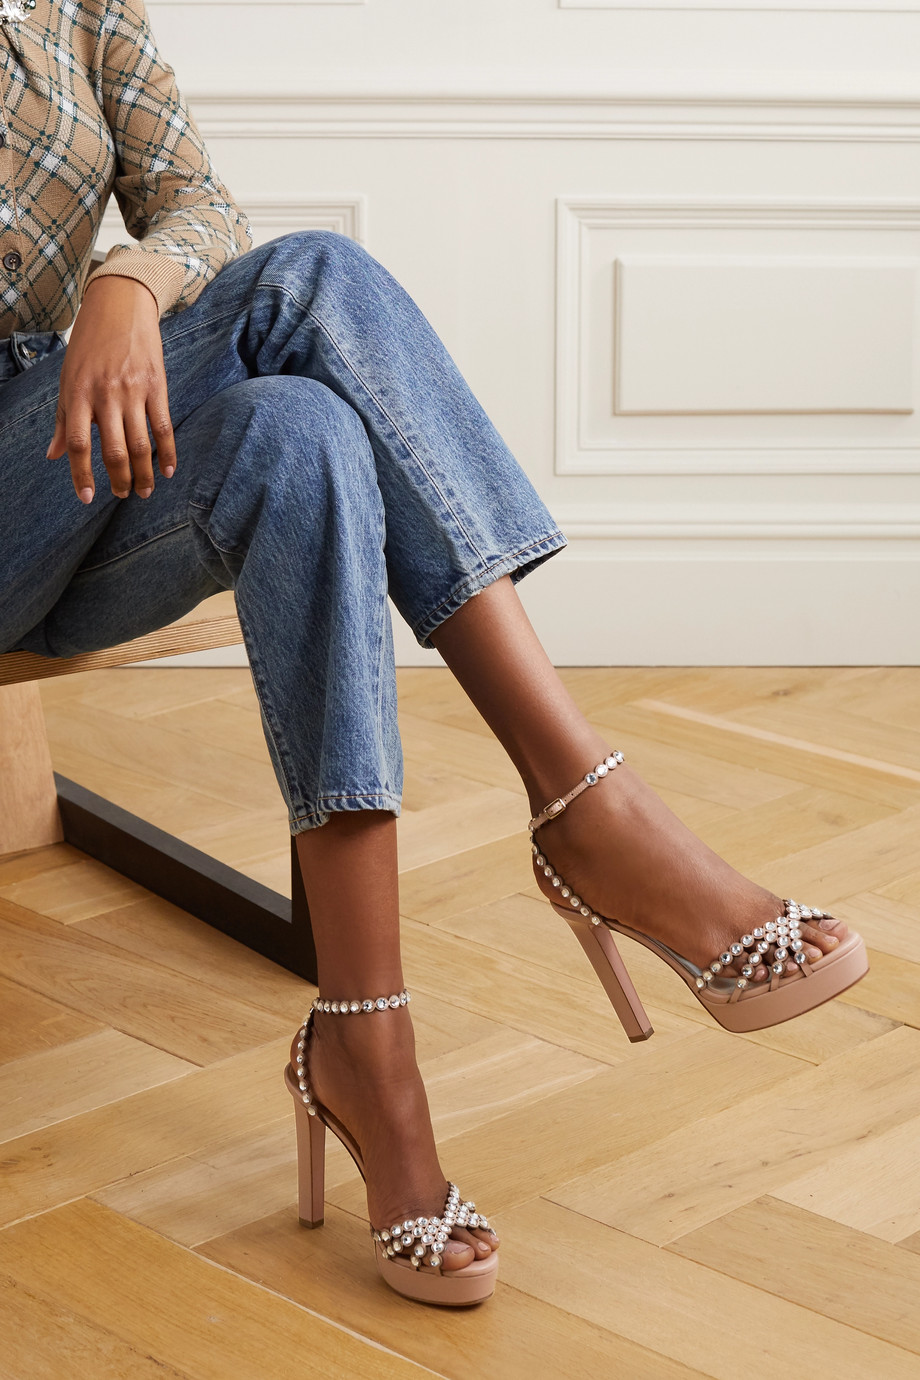 Aquazzura Tequila Plateau 120 crystal-embellished leather platform sandals